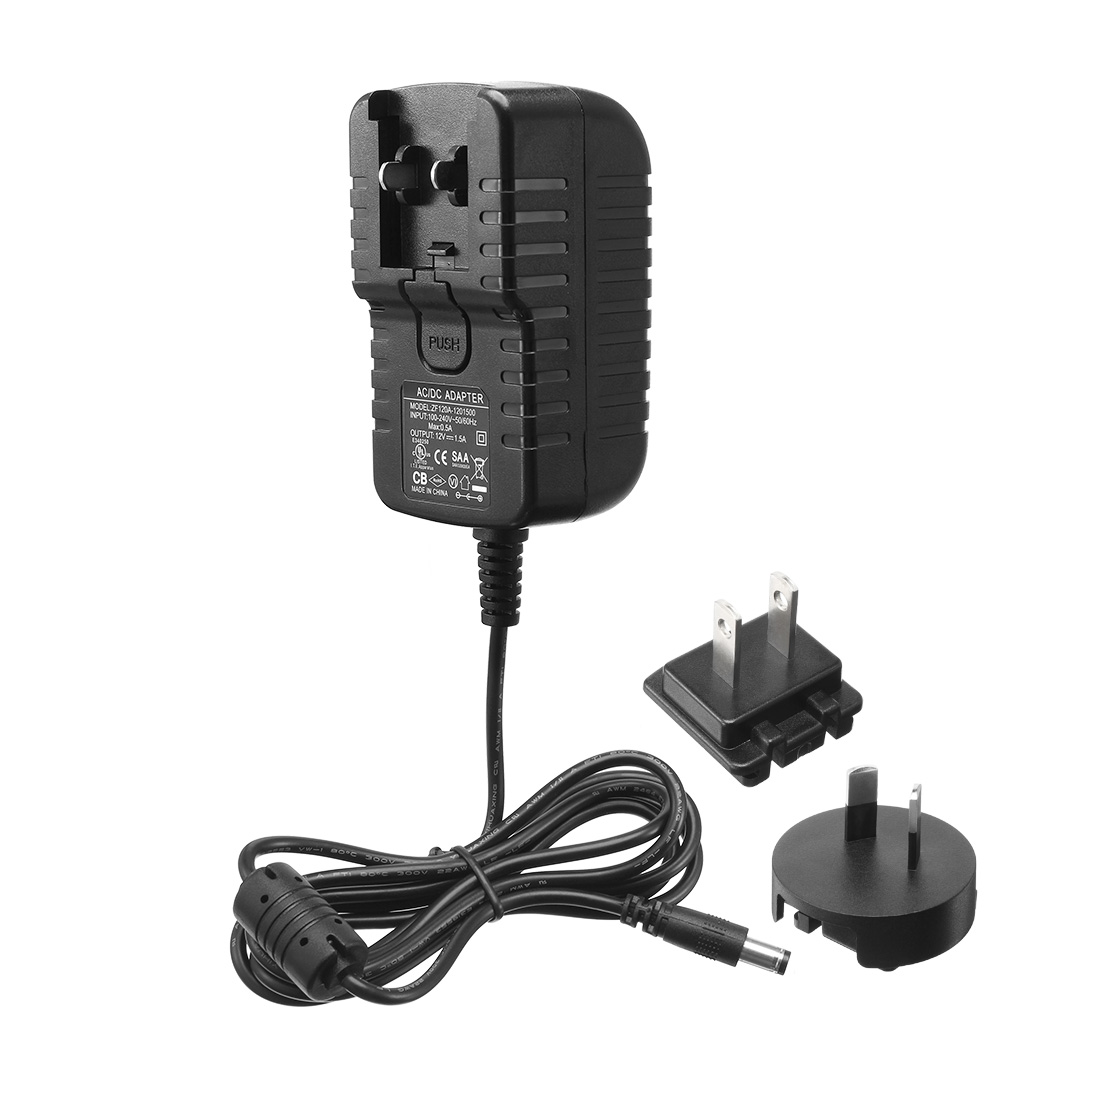 AC 100-240V to DC 12V 1.5A Power Charger w AU US Plugs